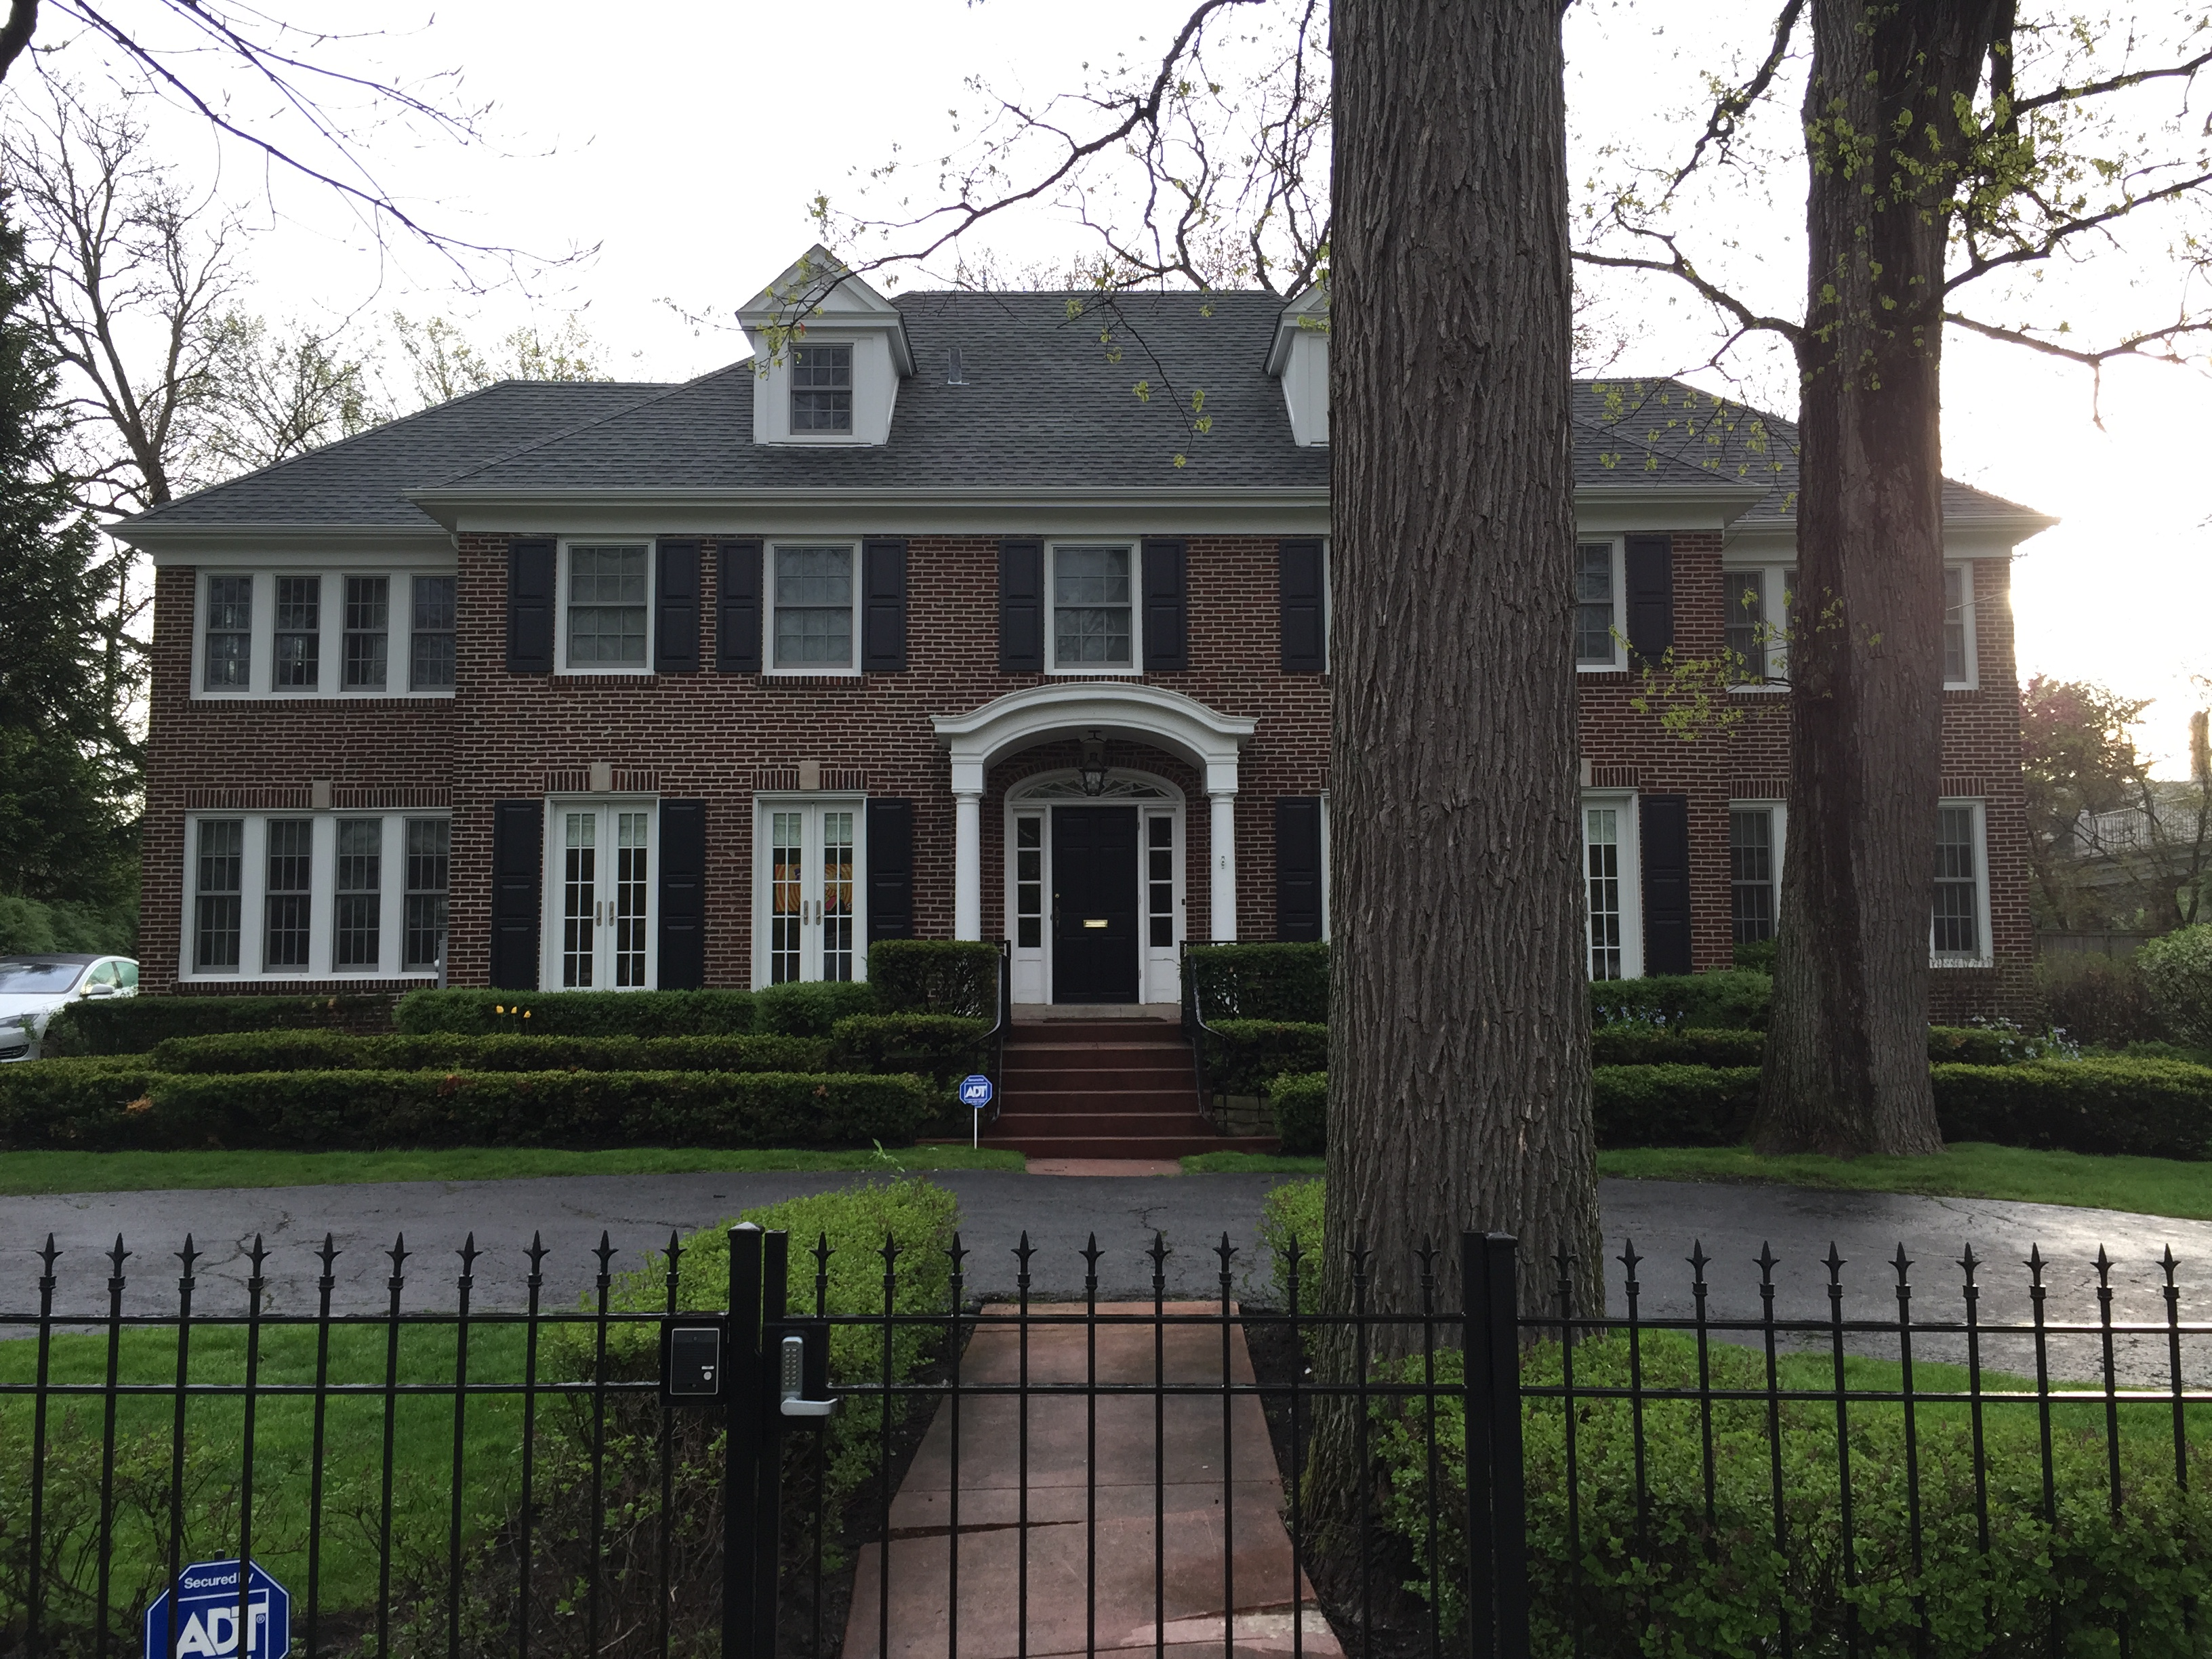 file 2015 05 11 06 40 04 view of the home alone house at 671 lincoln avenue in winnetka. Black Bedroom Furniture Sets. Home Design Ideas